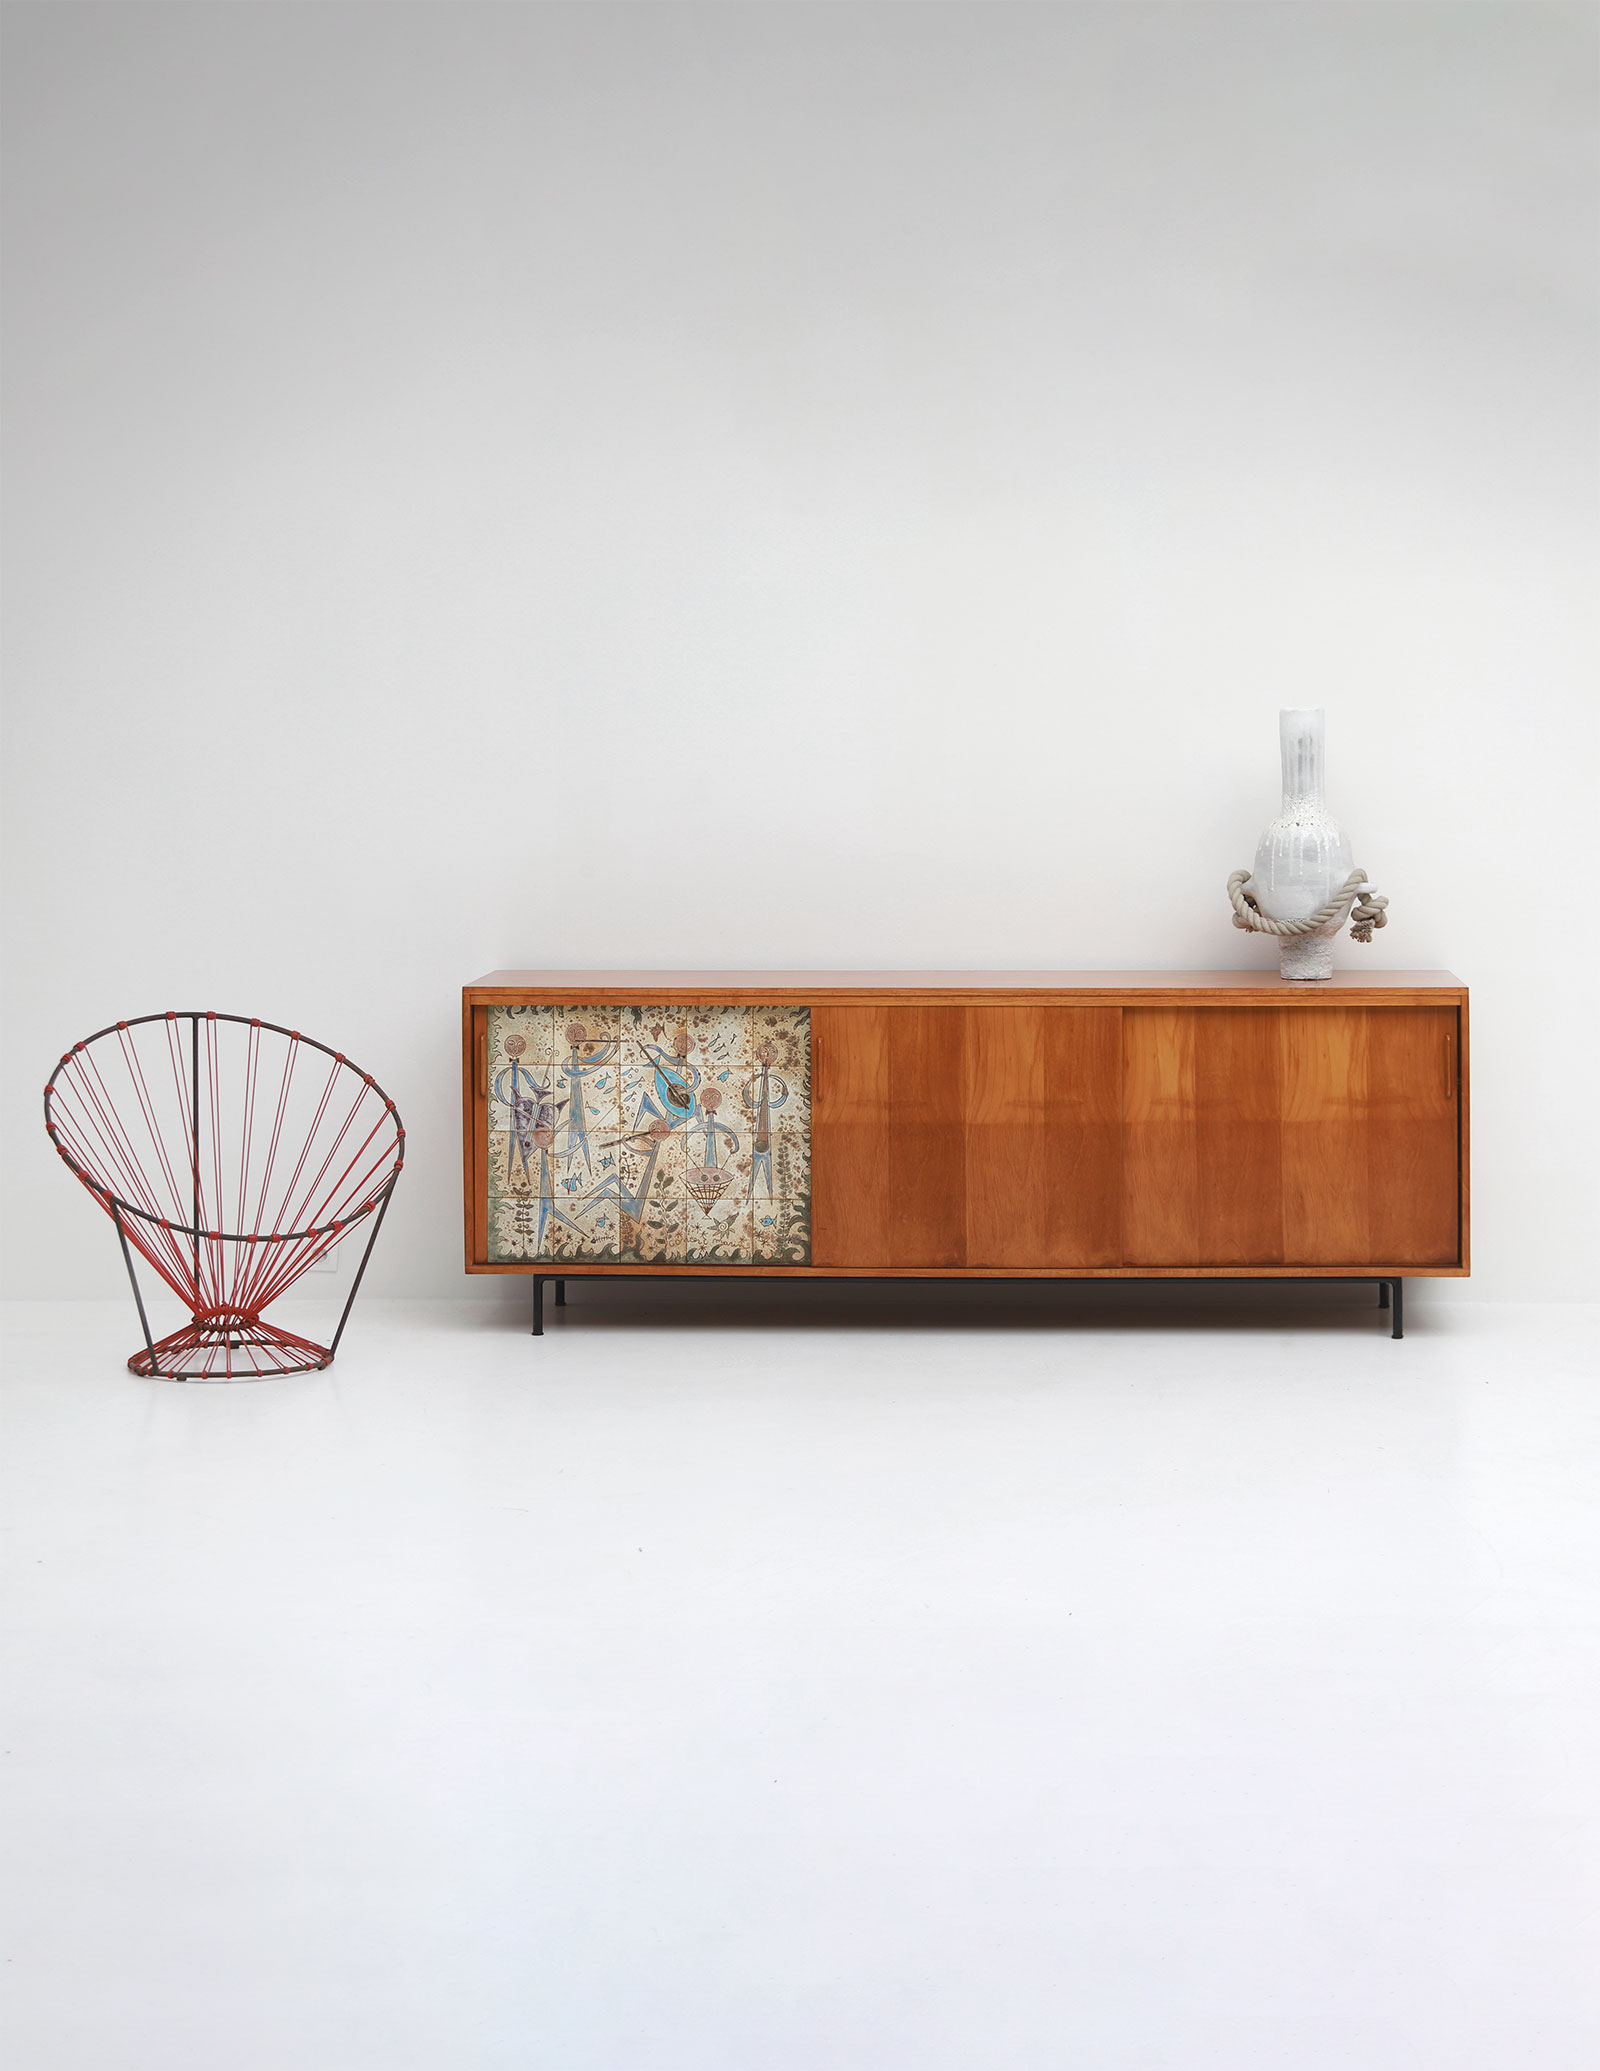 Sideboard with Ceramic Tiles Charles-Emile Pinson 1958image 1